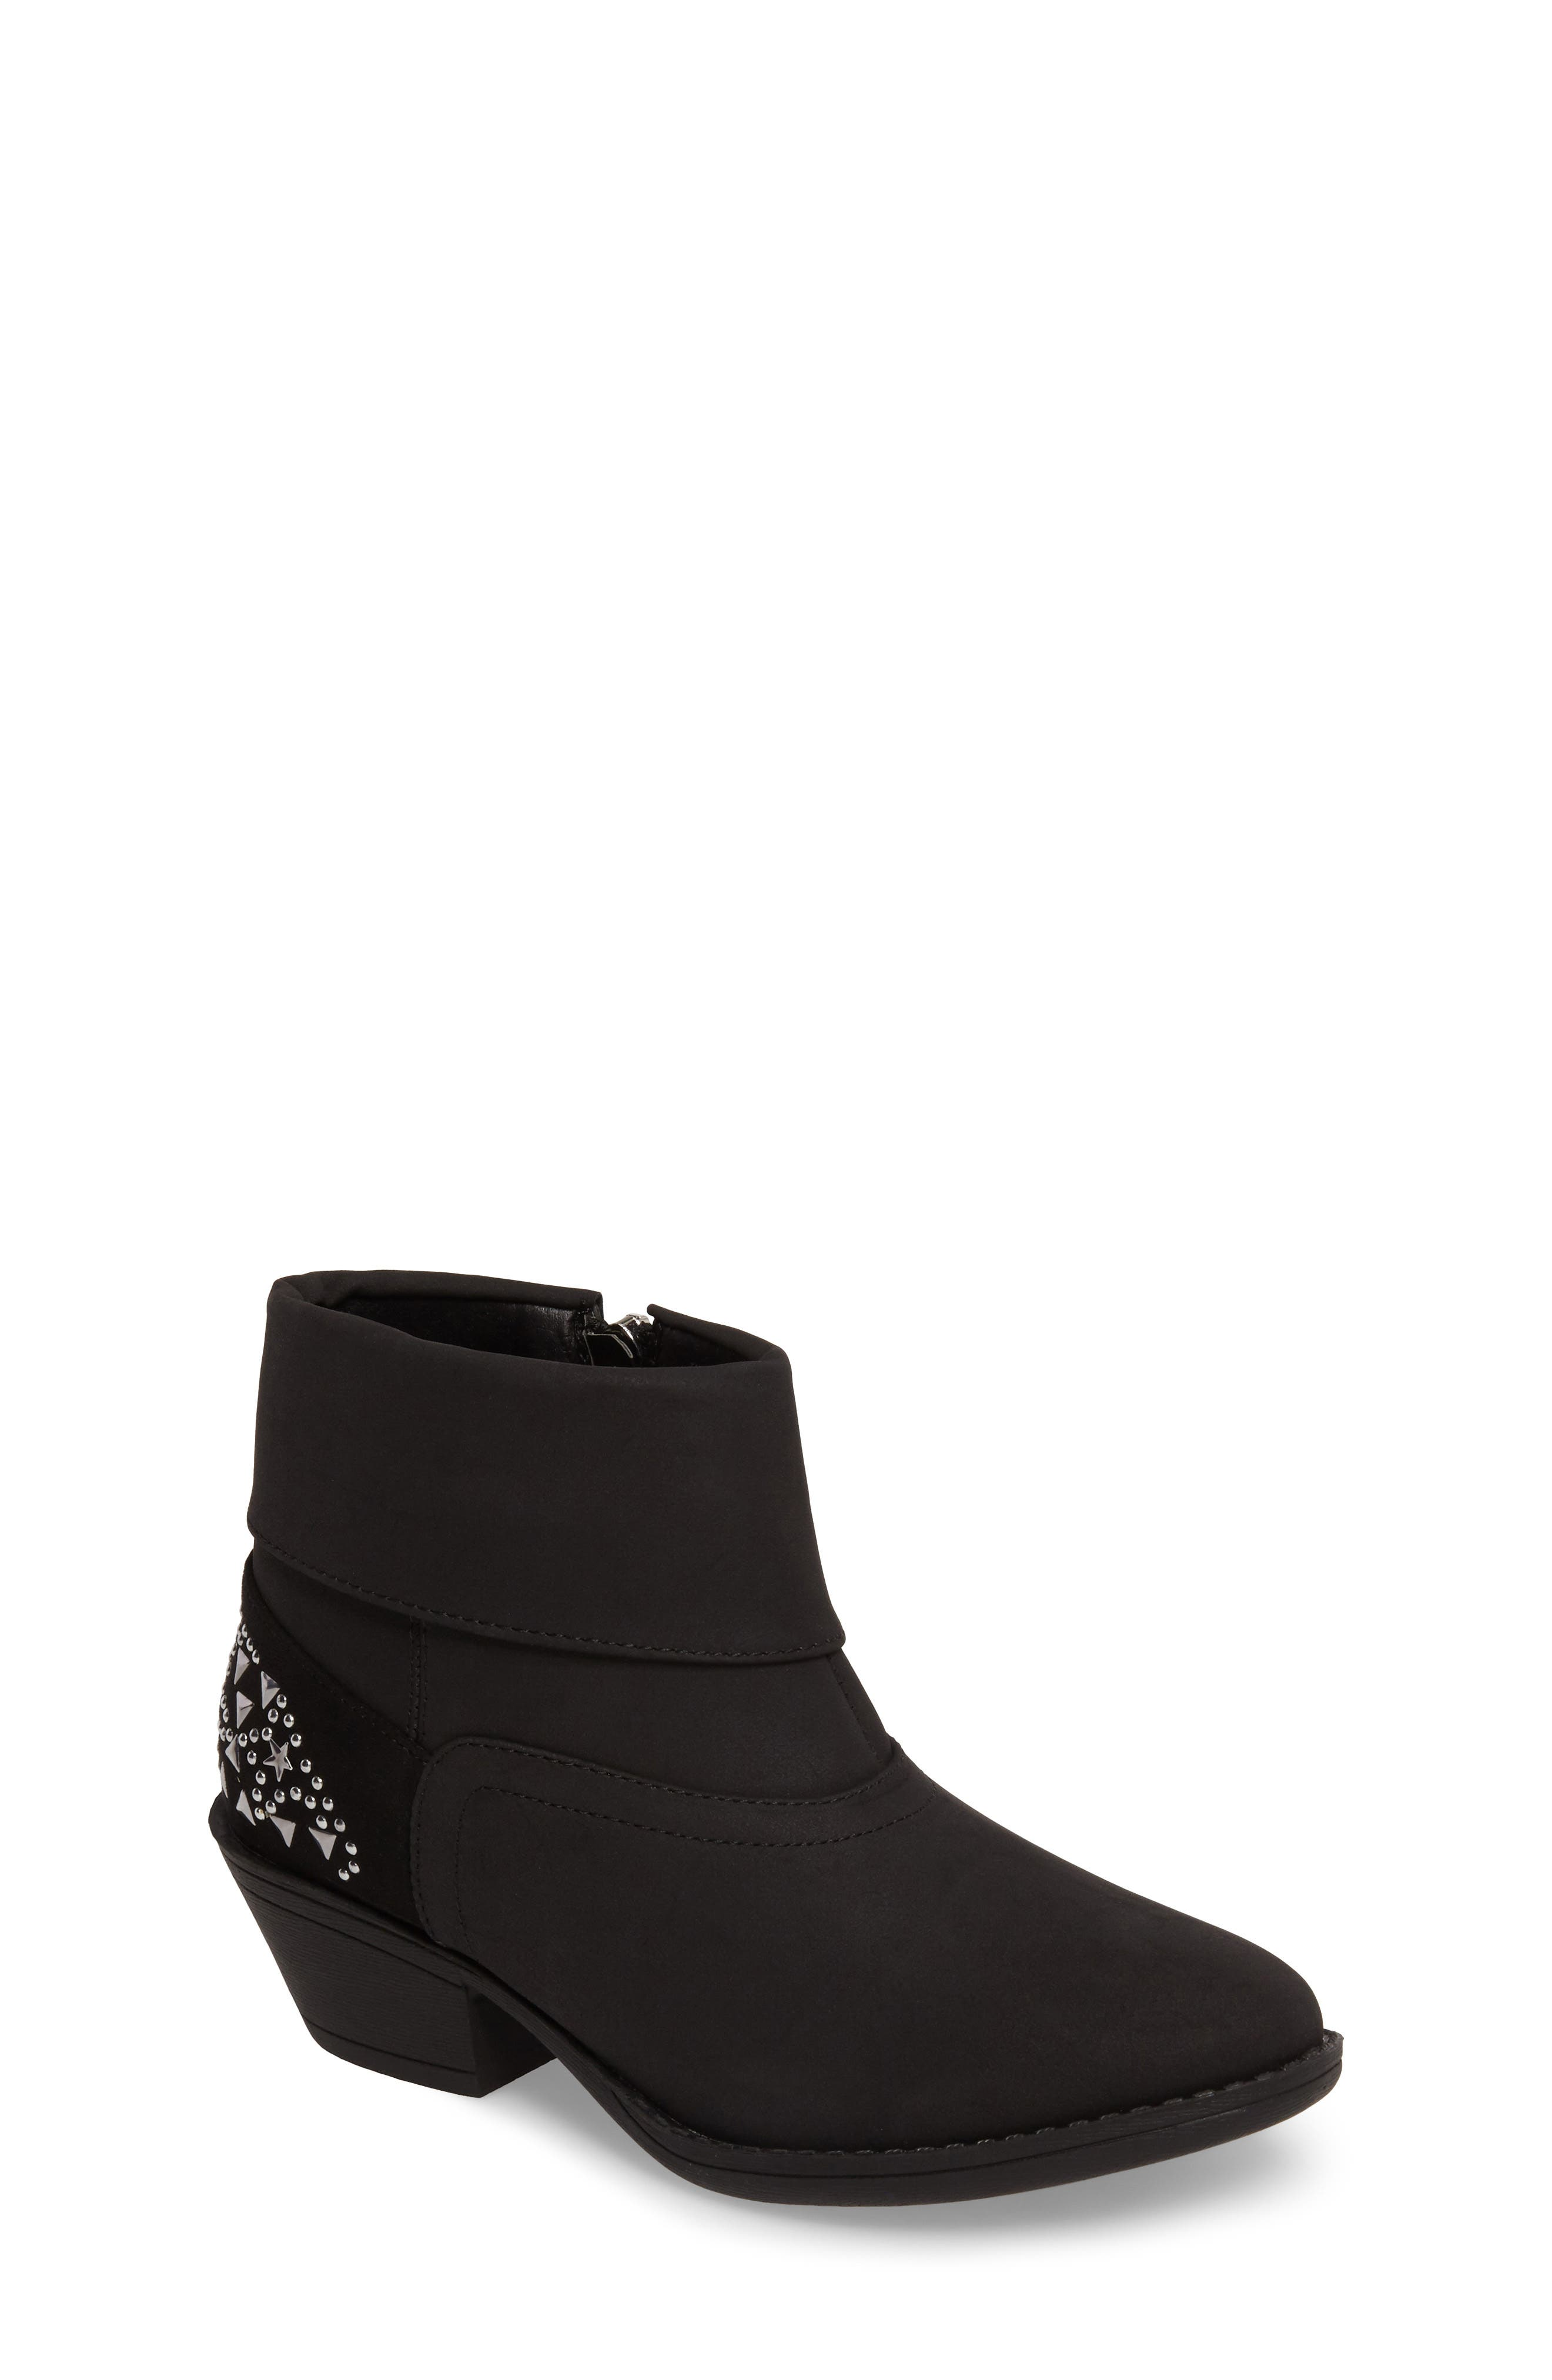 Taylor Star Bootie,                         Main,                         color, 001